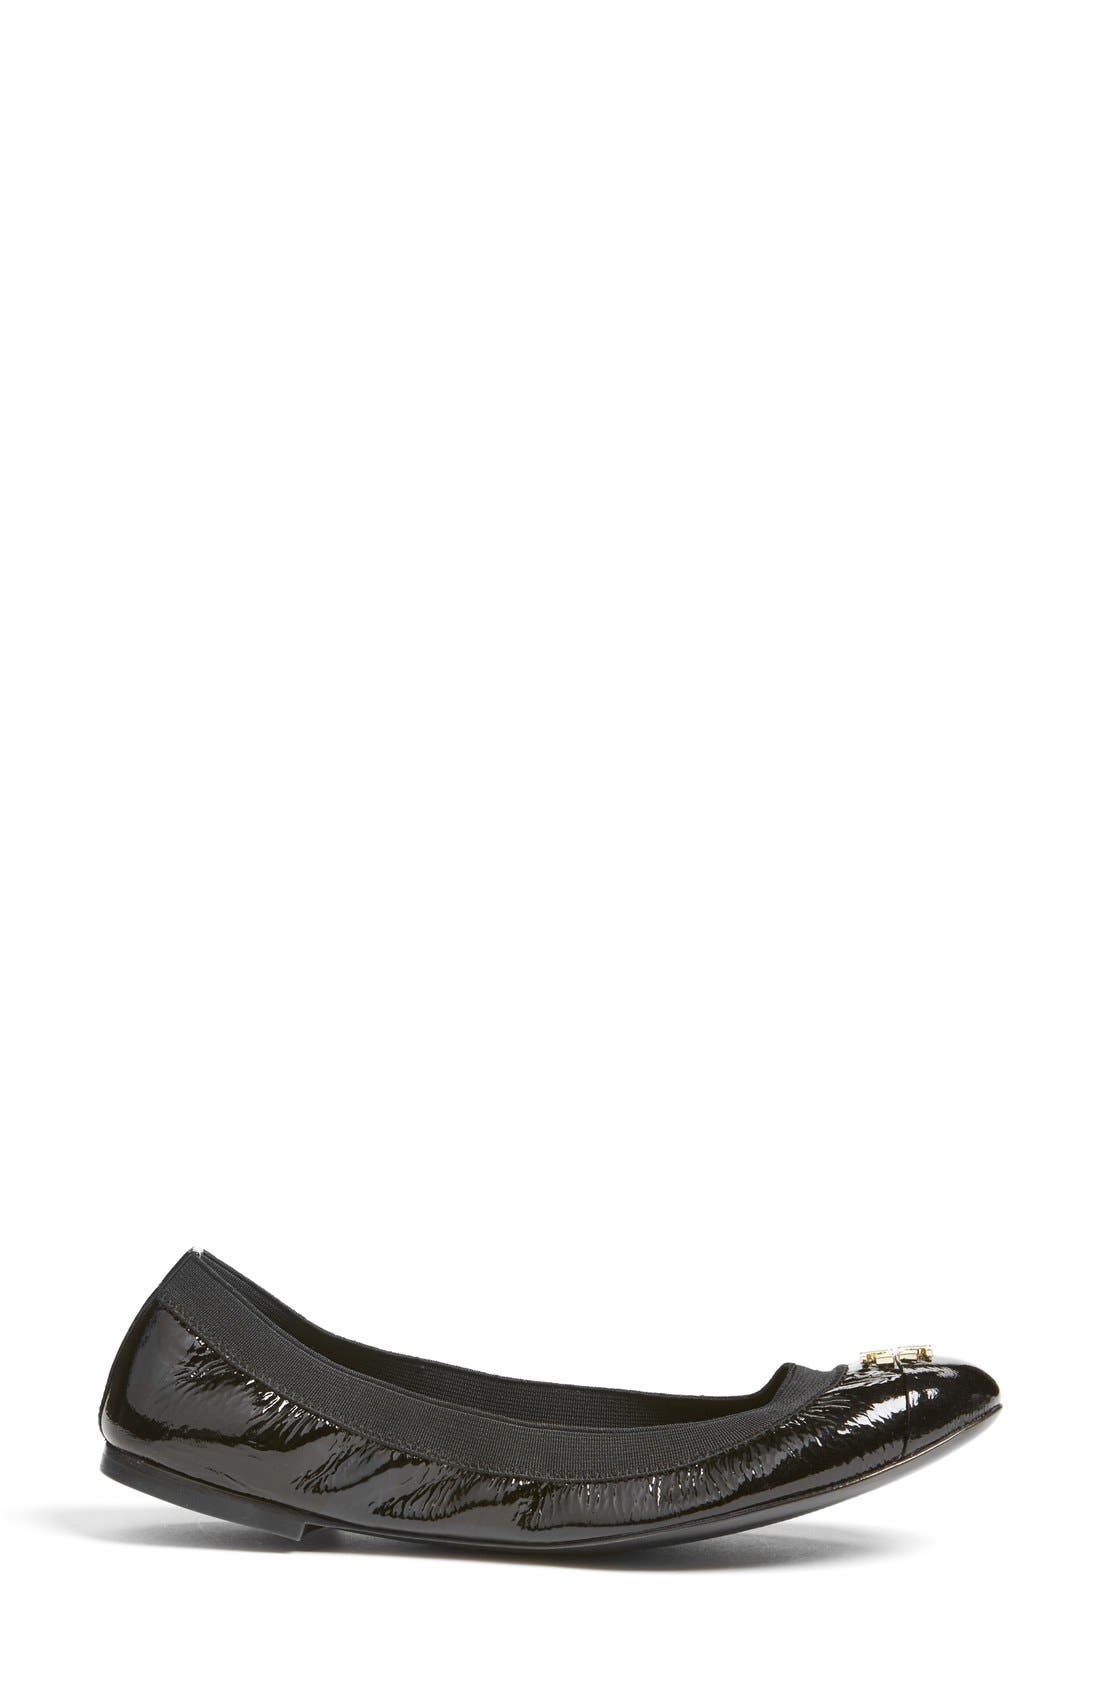 Alternate Image 4  - Tory Burch 'Jolie' Ballet Flat (Women)